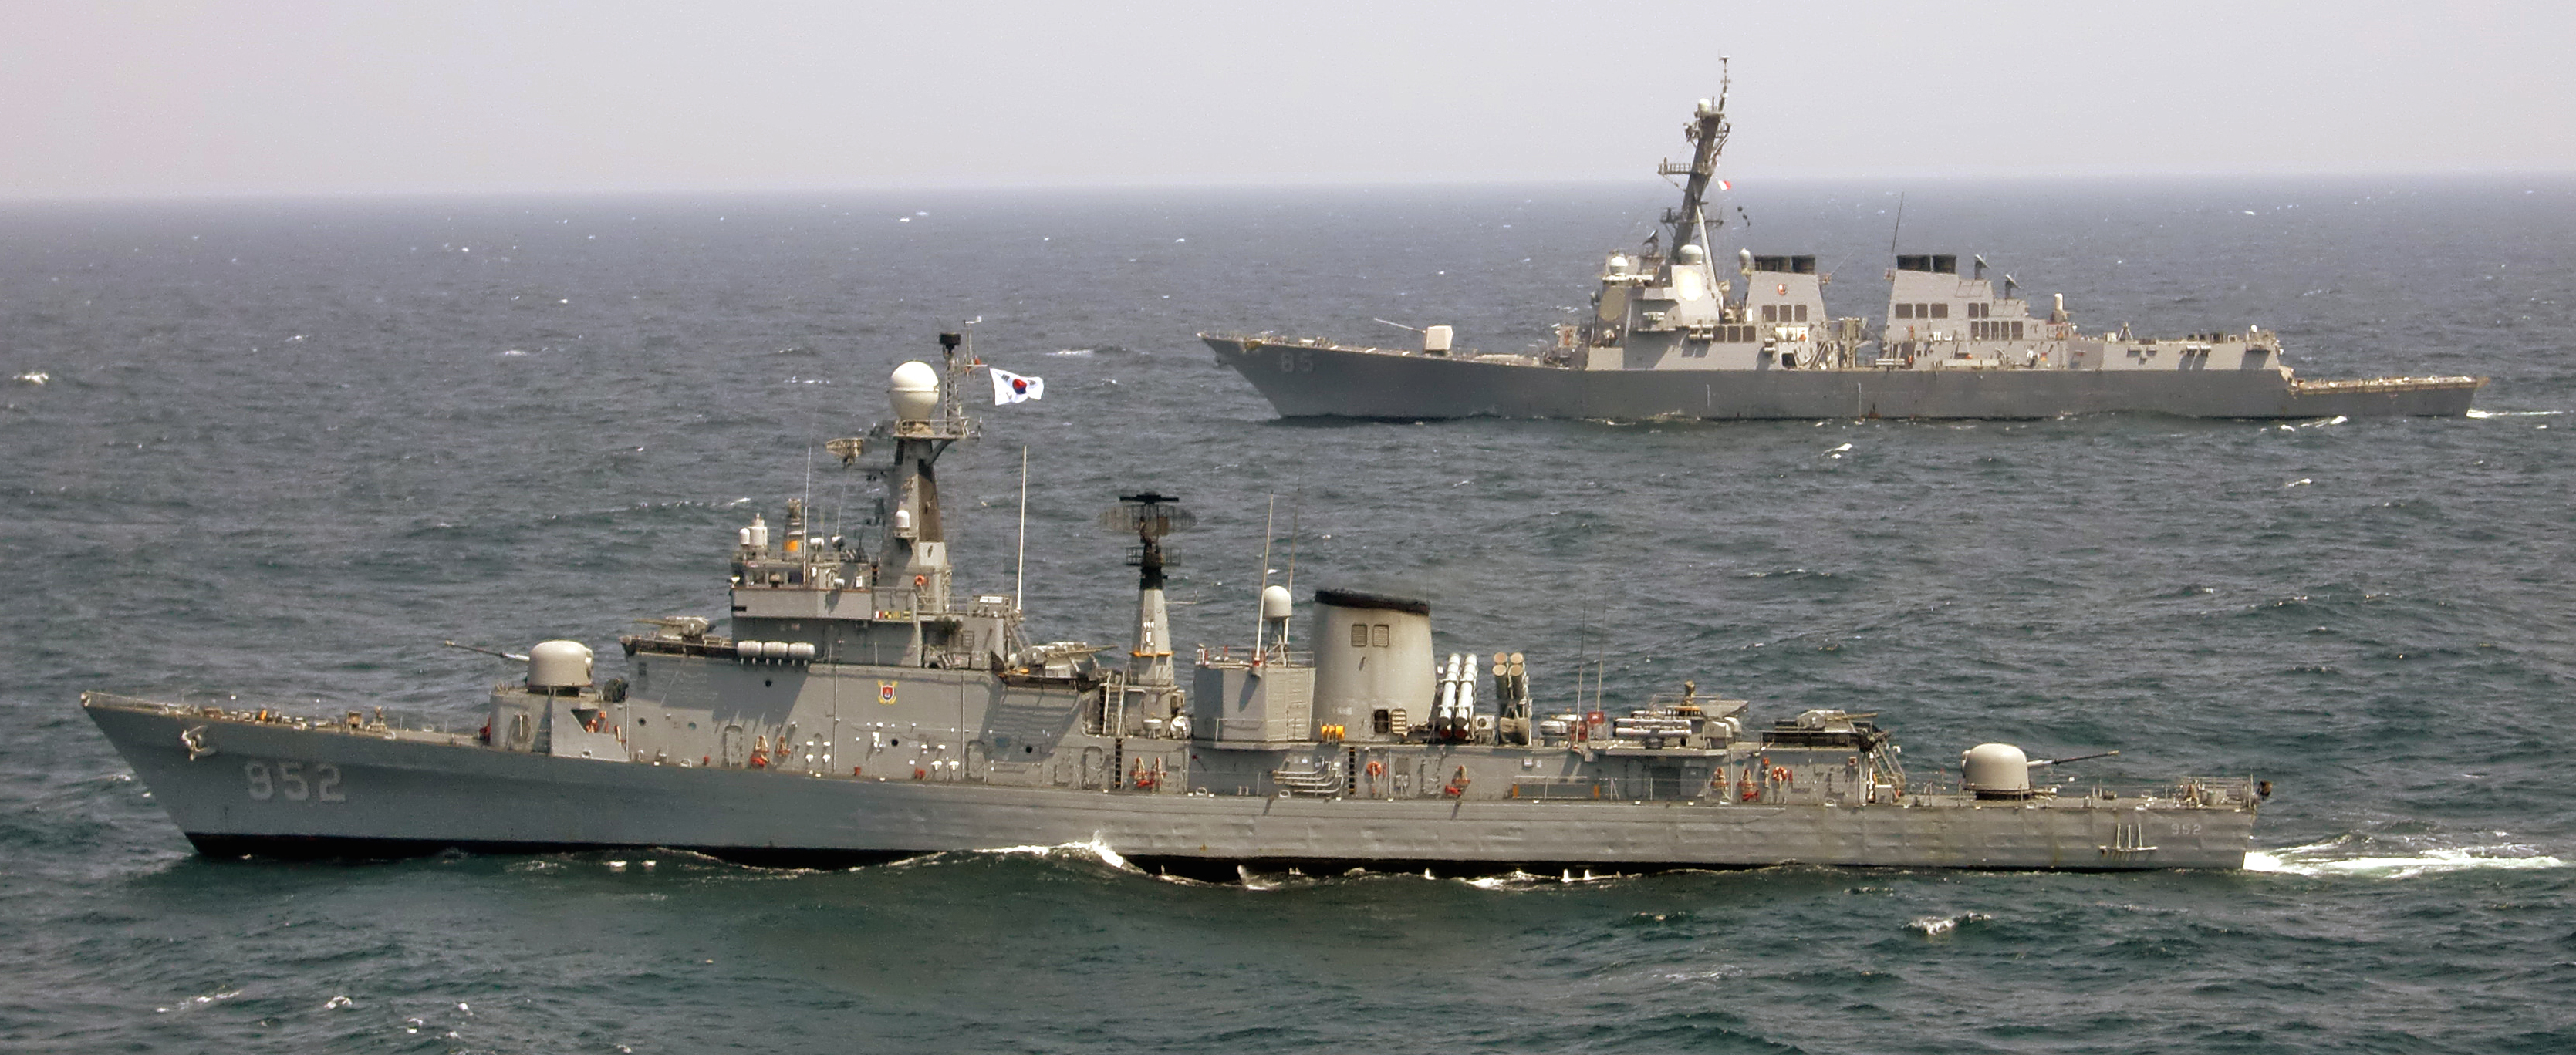 Republic of Korea Ulsan-class frigate ROKS Seoul (FF-952) in 2011. US Navy Photo